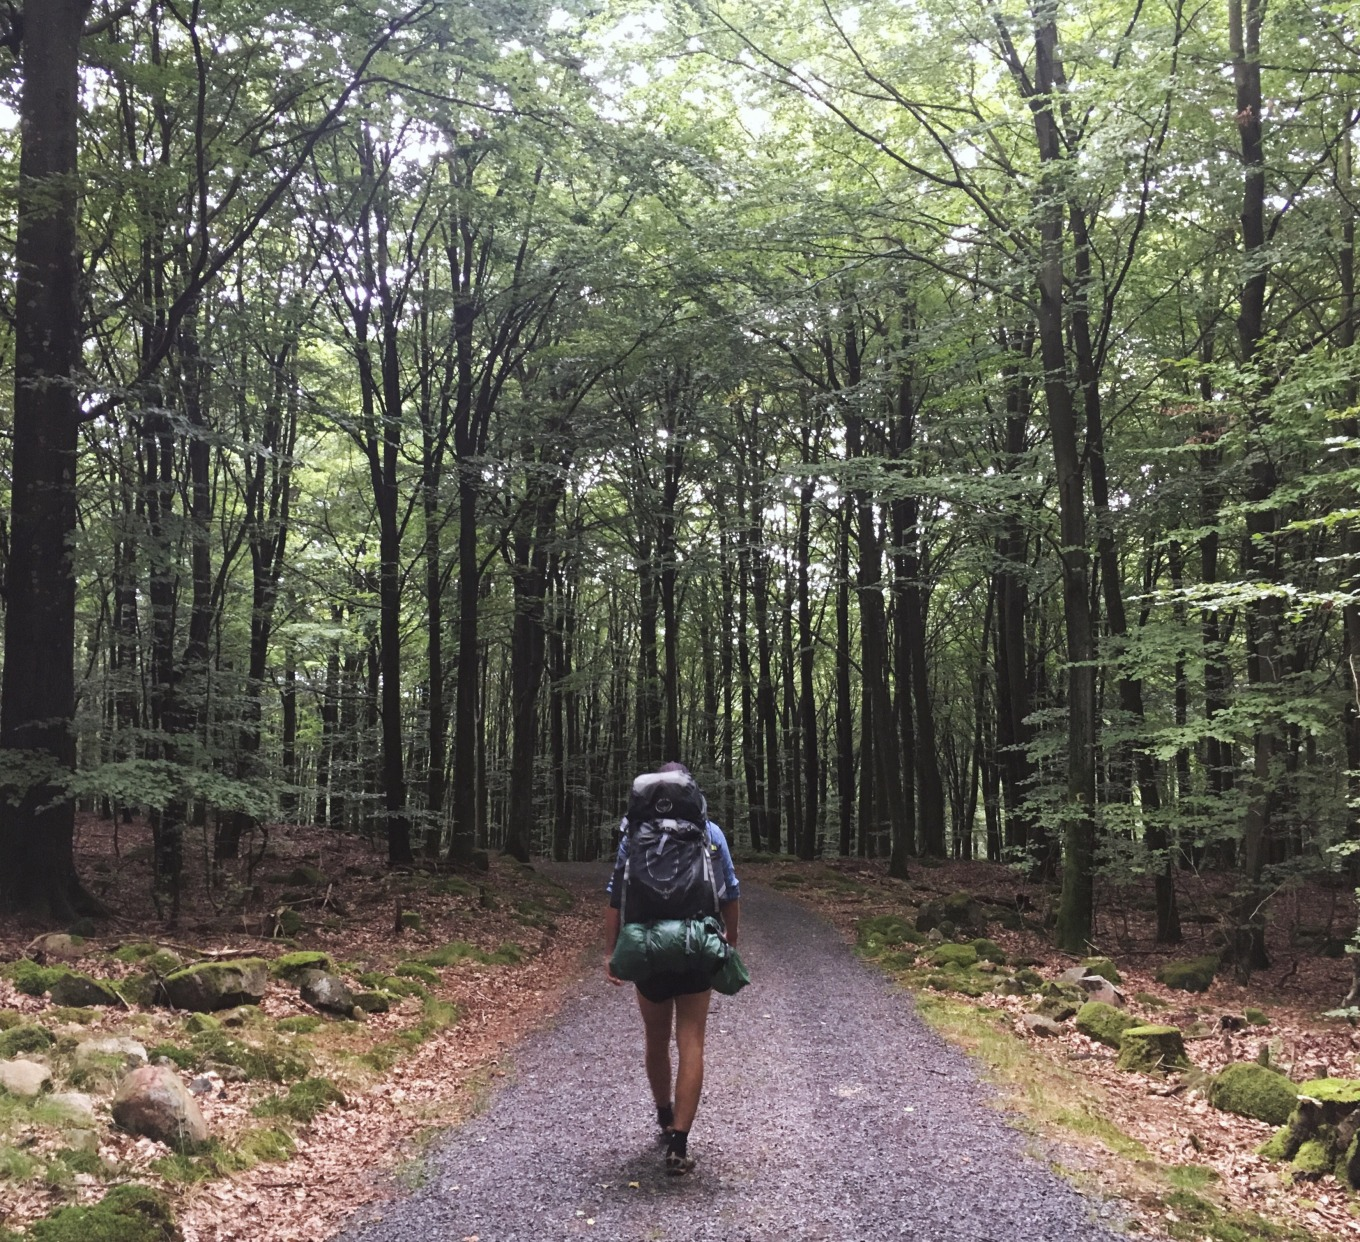 Road tripping, hiking and camping with a Swedish friend in the southern county of Skåne, Sweden